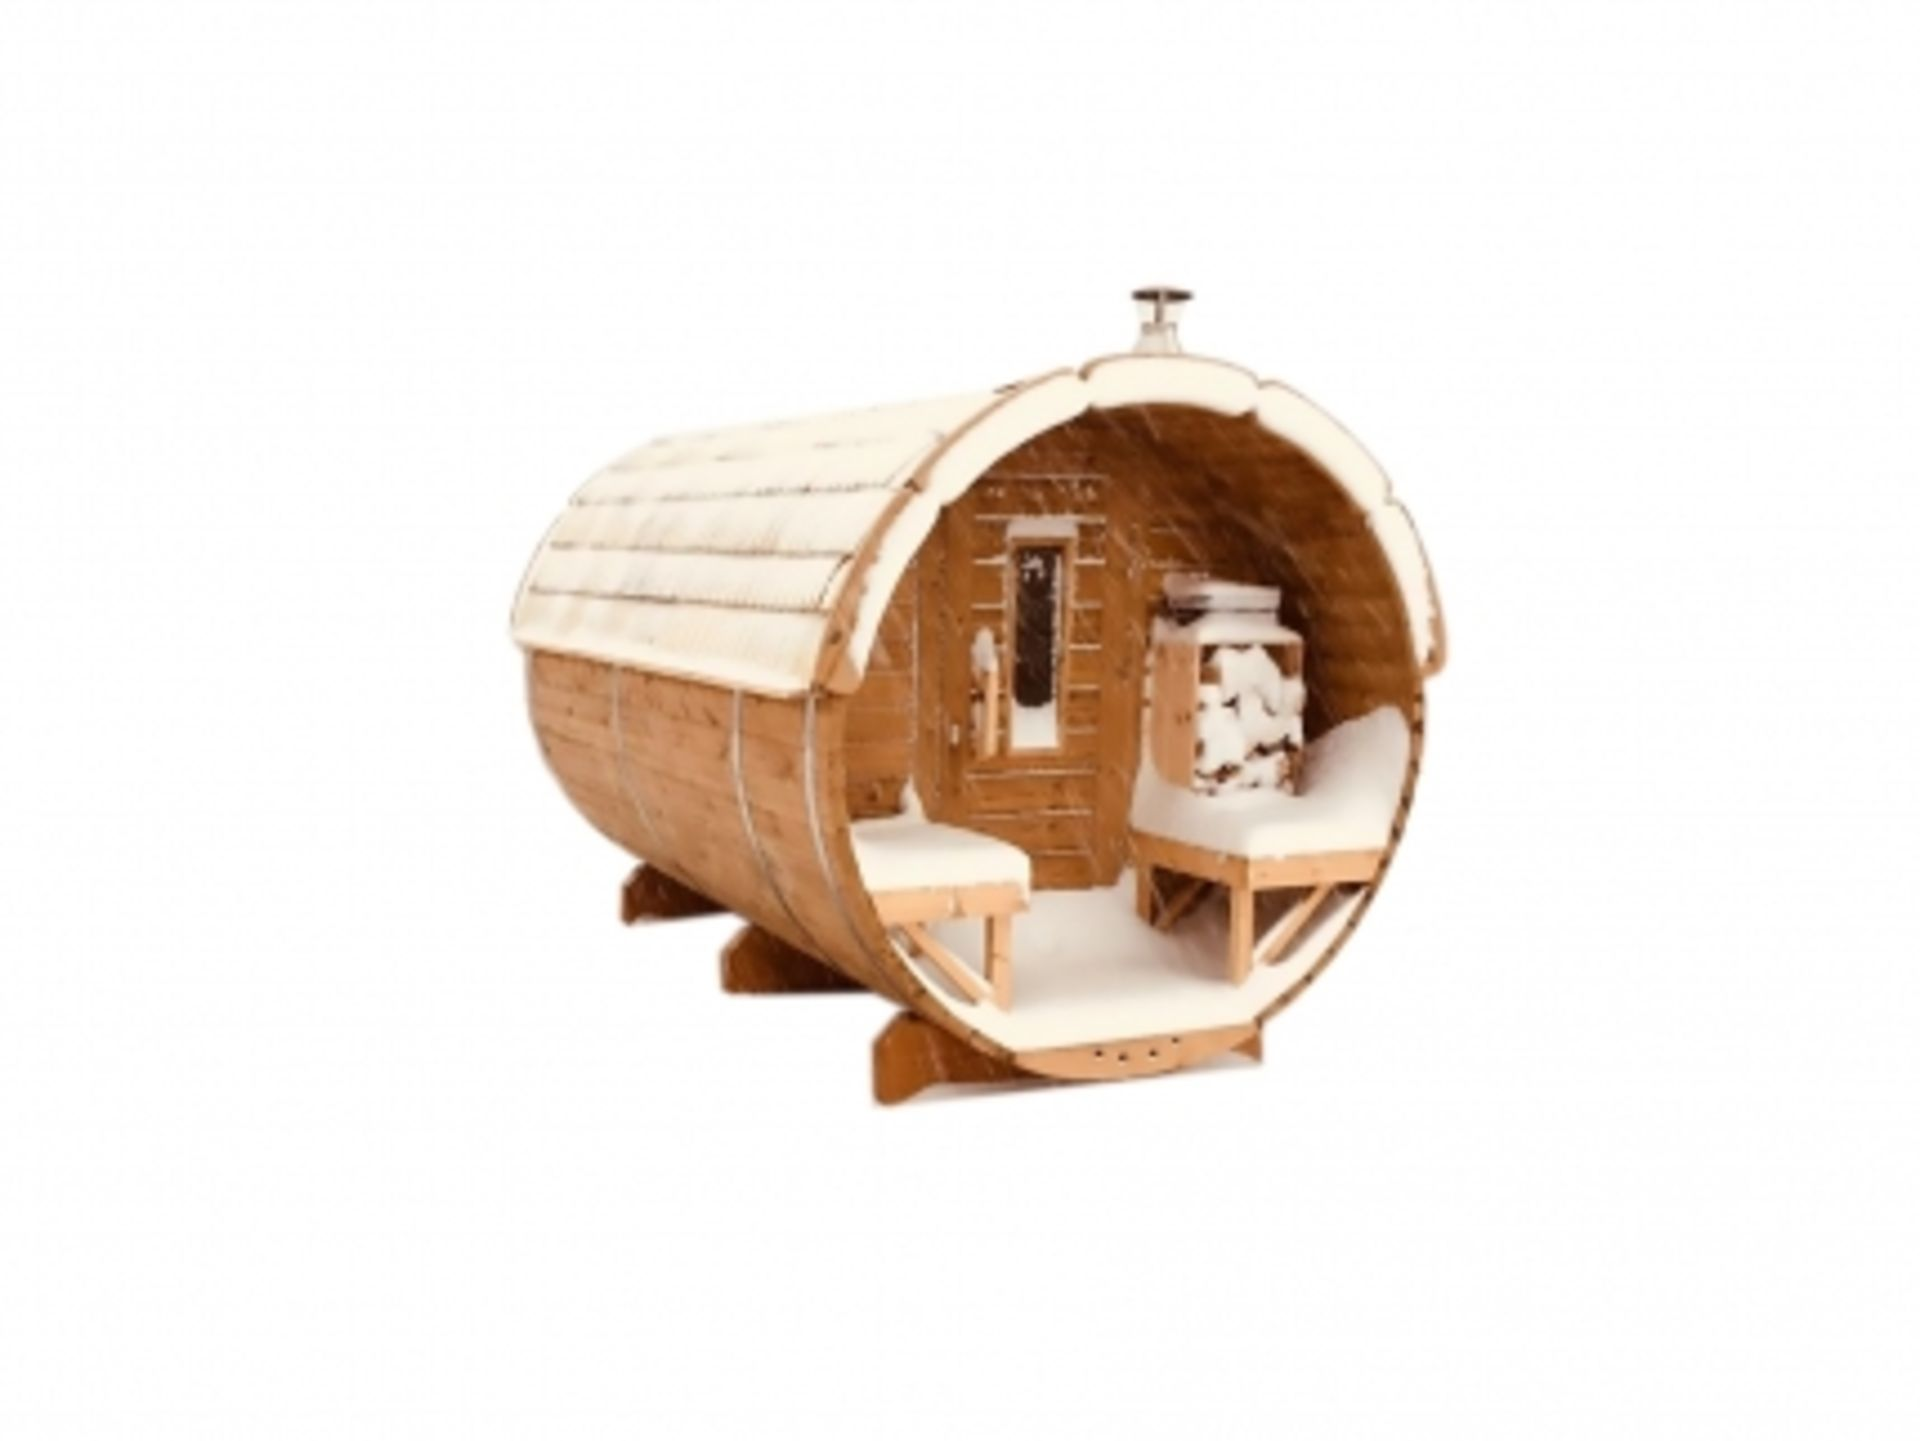 Lot 19019 - + VAT Brand New 3 x 1.9m Sauna Barrel - Made From Spruce Wood - Roof Covered With Wooden Shingles -